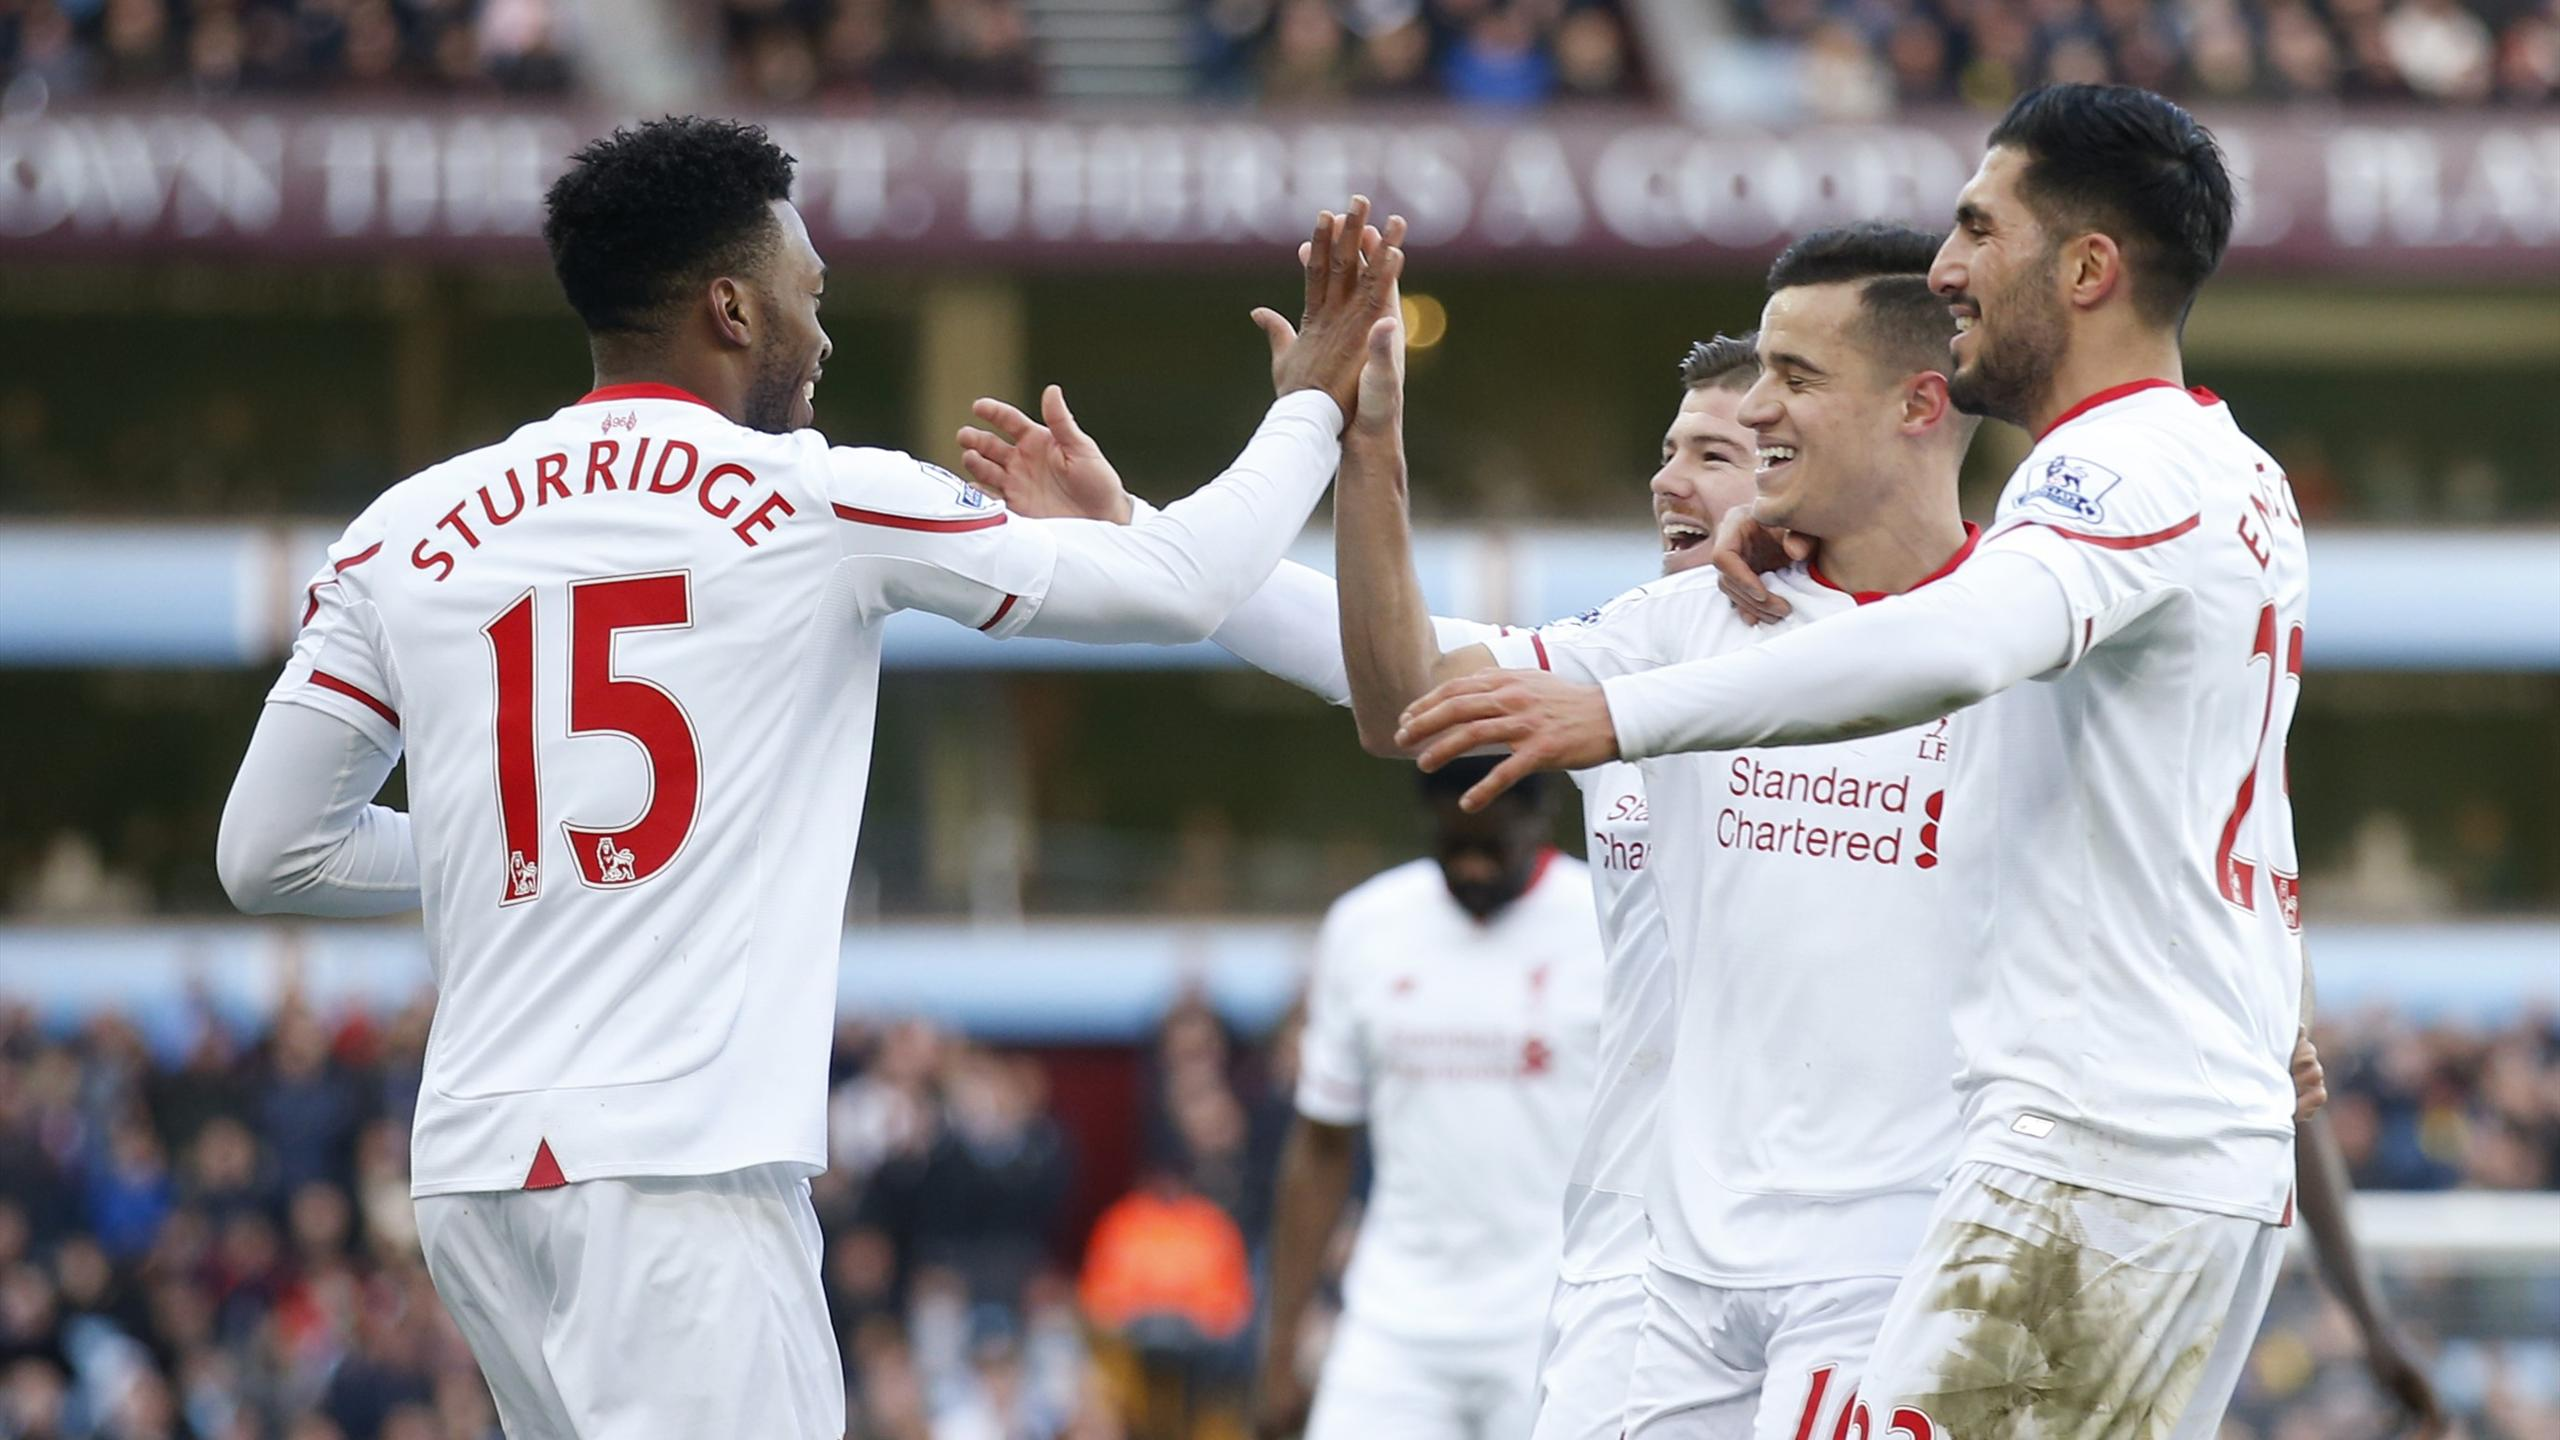 Daniel Sturridge celebrates scoring the first goal for Liverpool with team mates